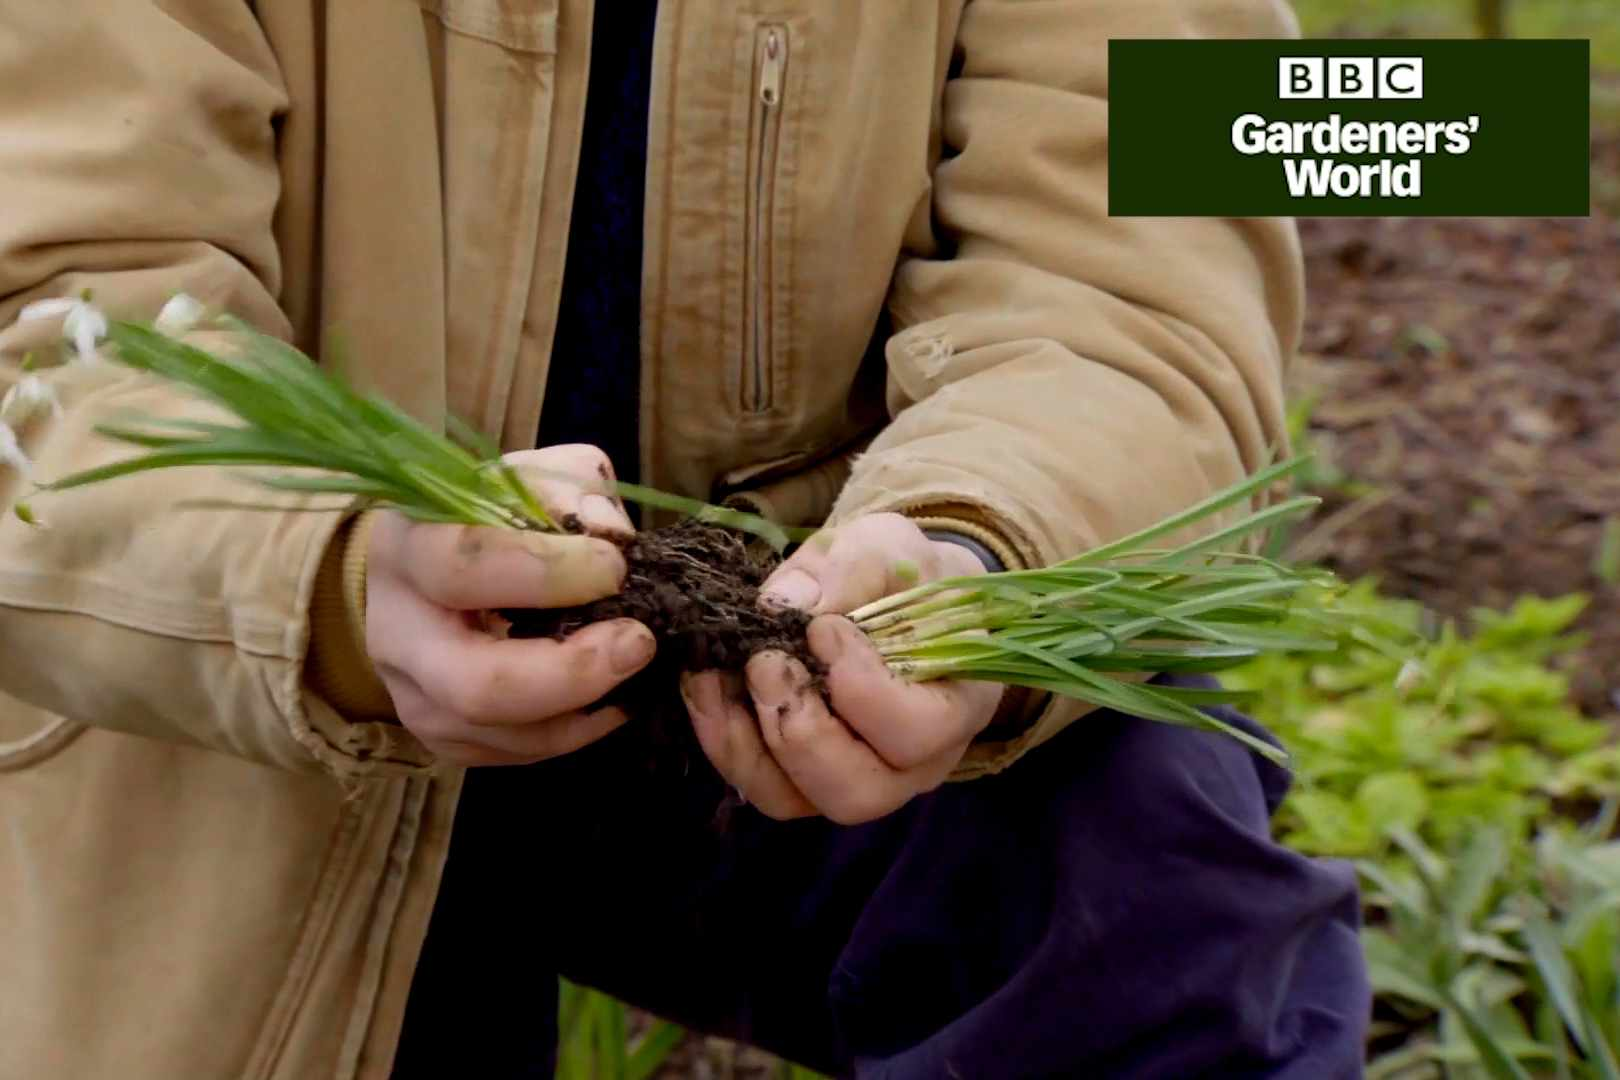 How to divide snowdrops in the green - Gardeners' World video clip